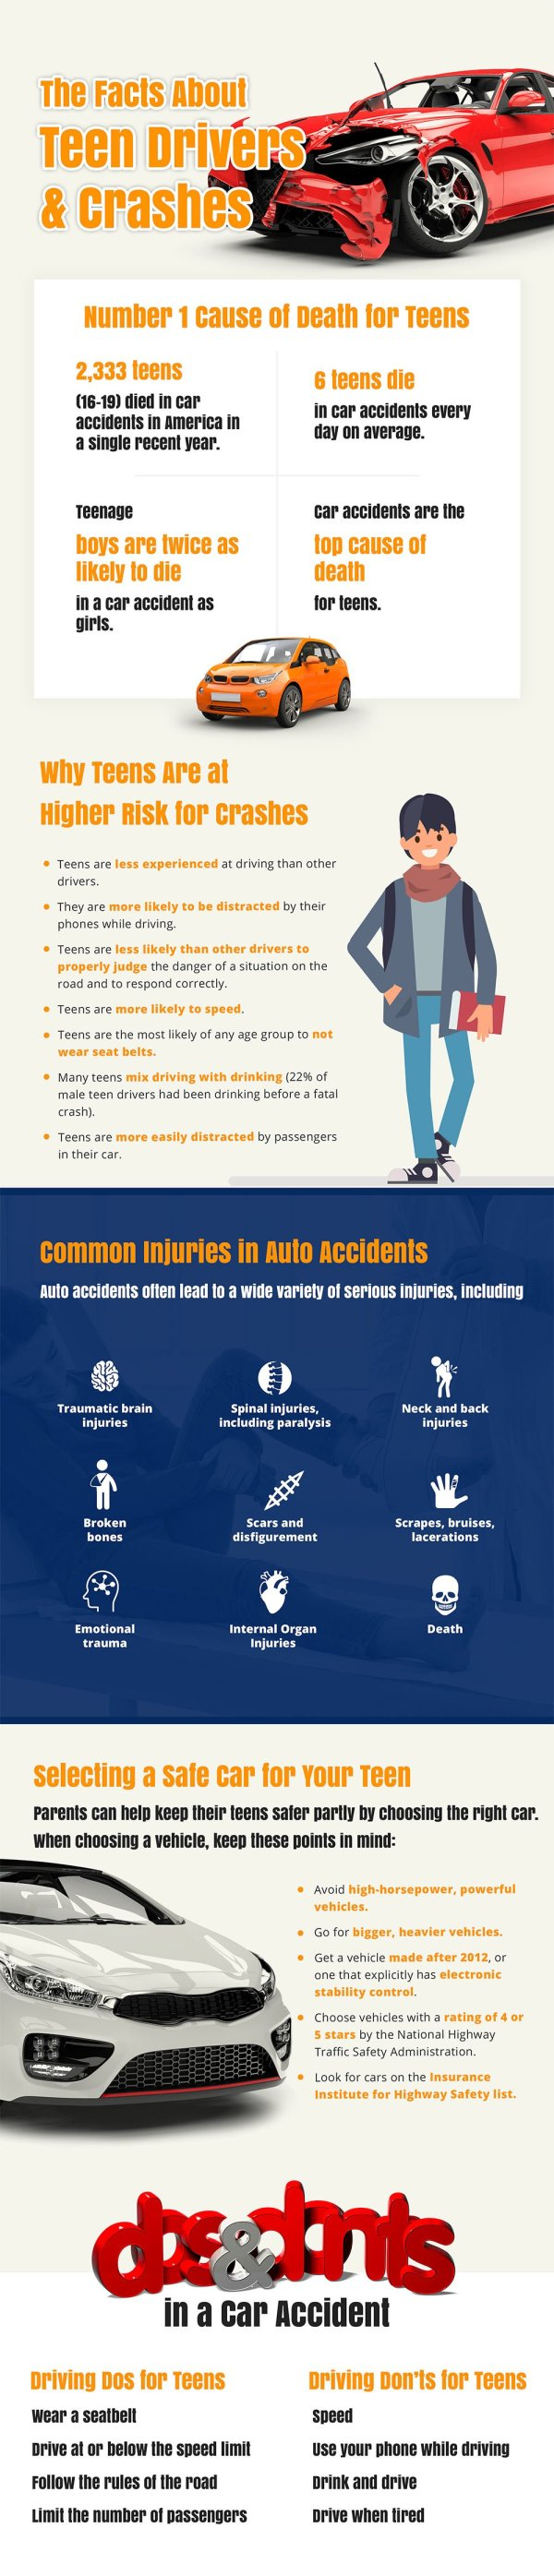 teen-drivers-and-crashes-facts-infographic